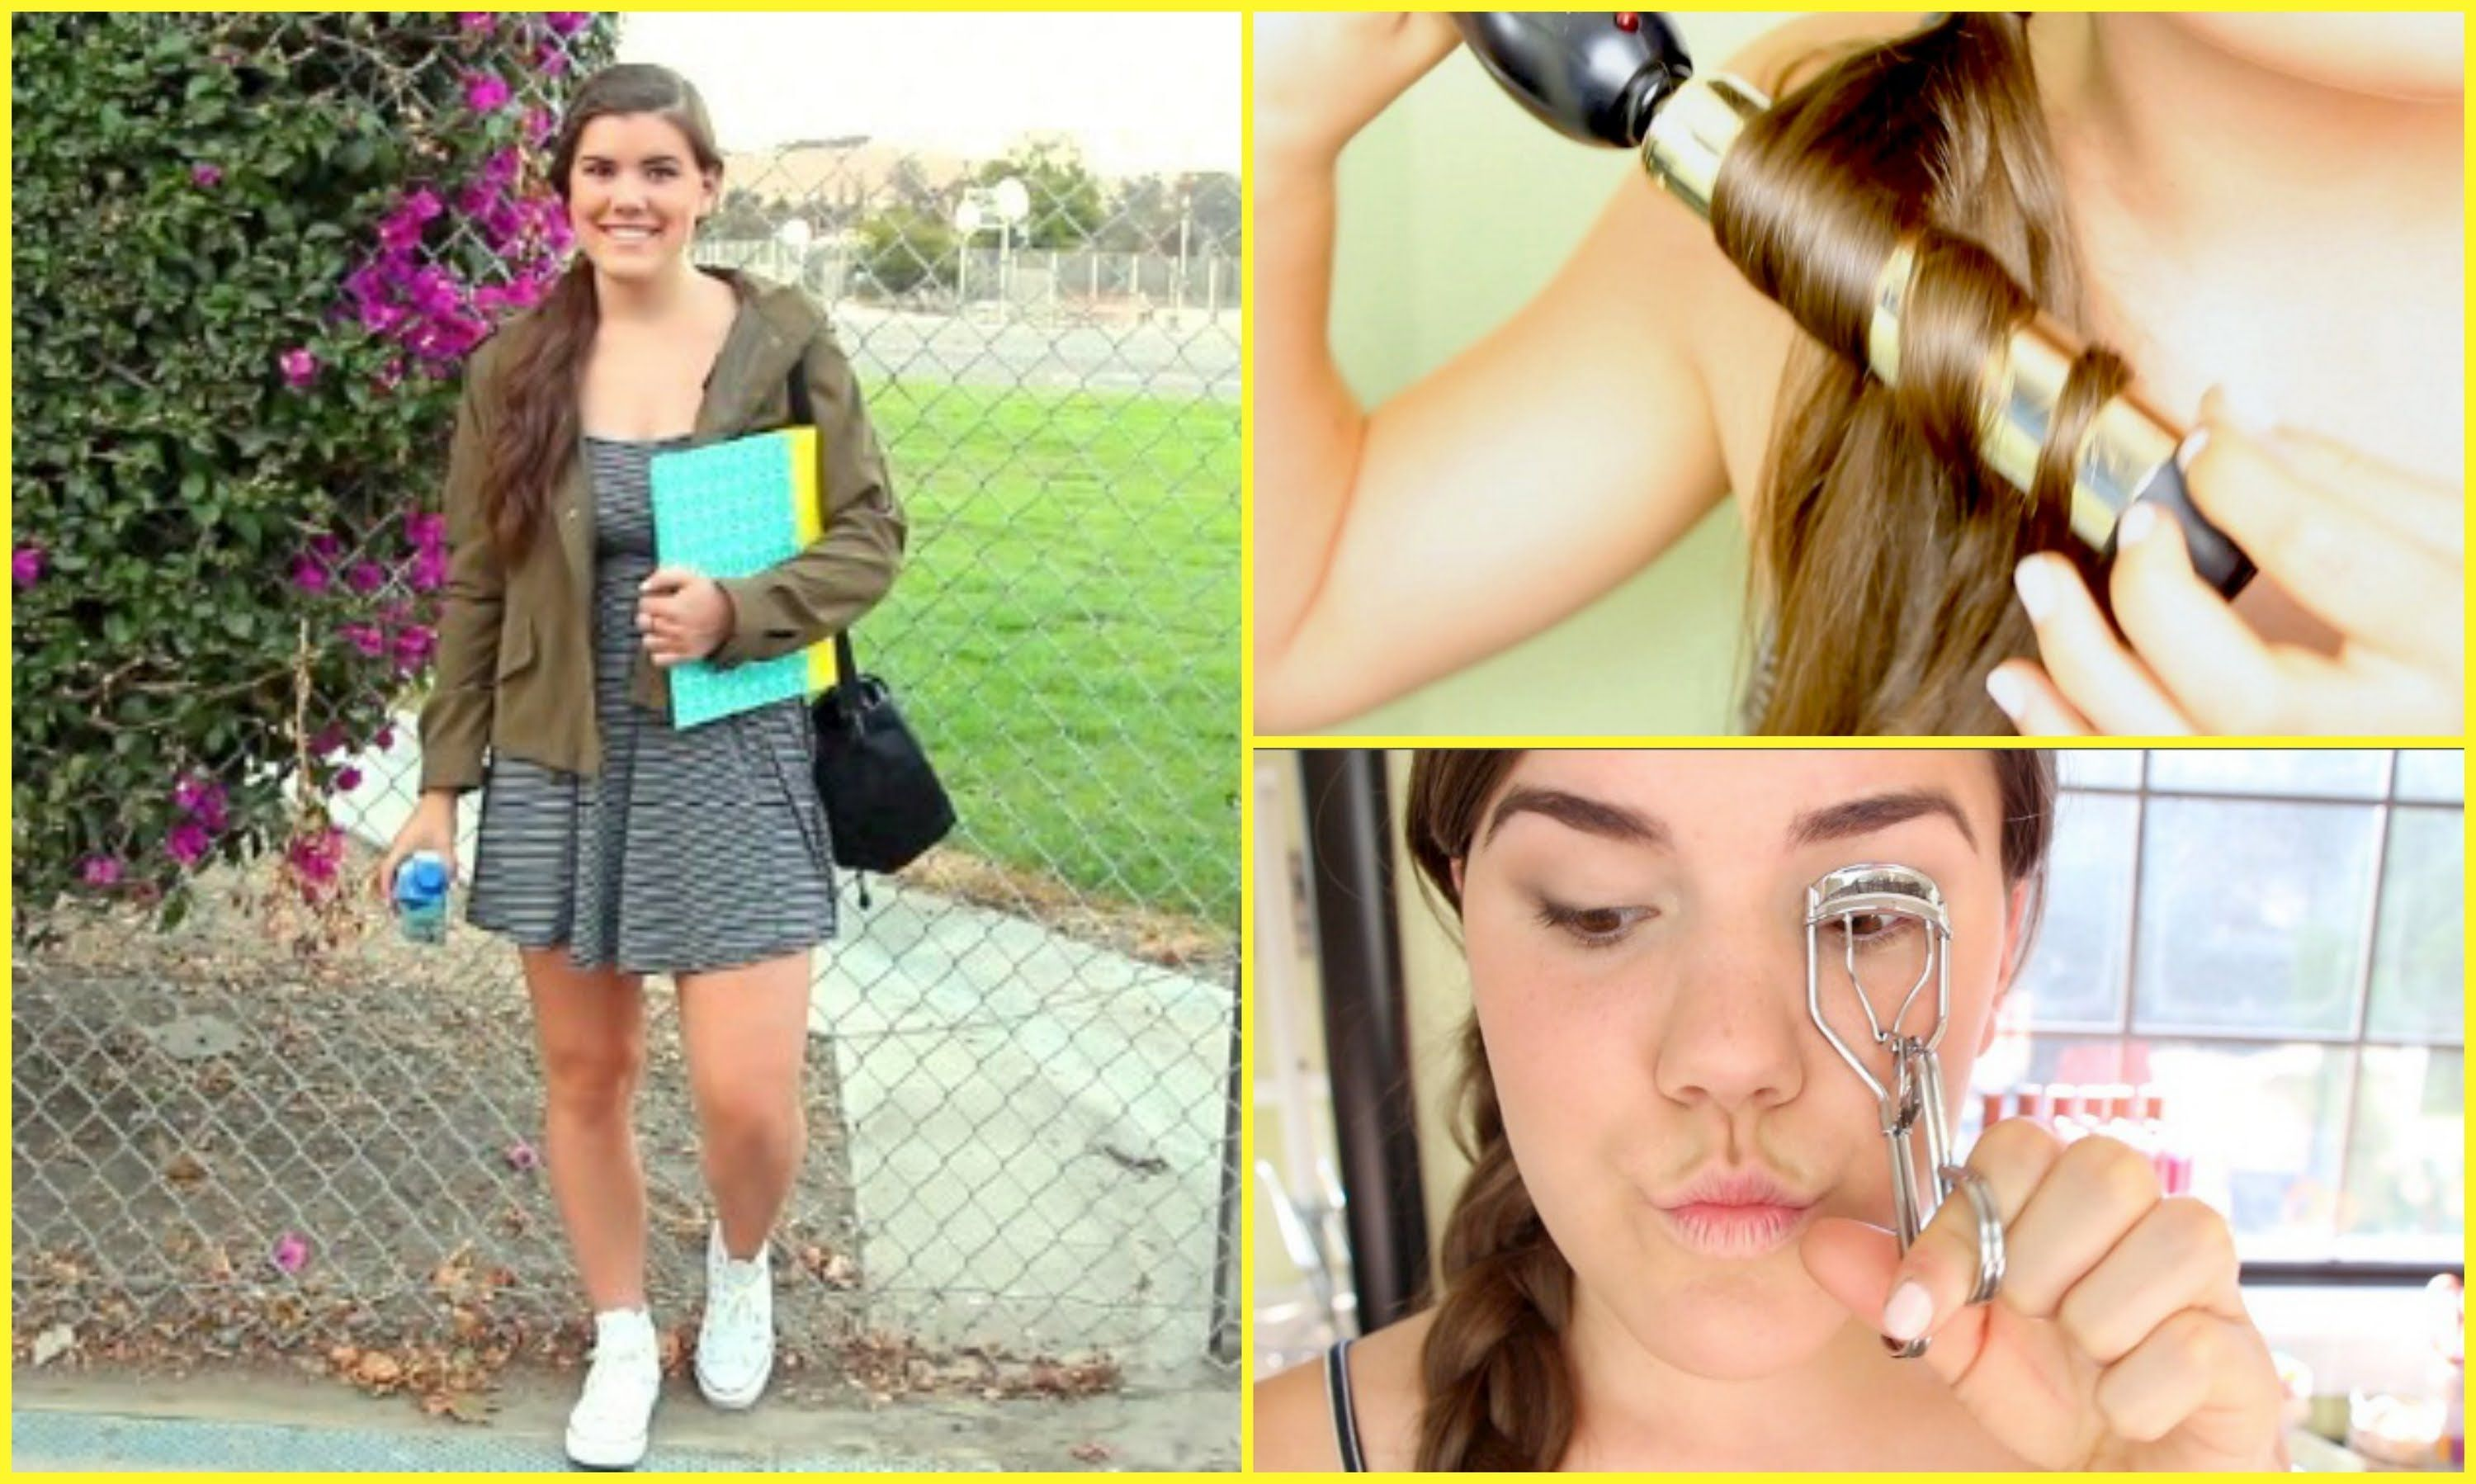 First Day of School Hair, Makeup, & Outfit! by BreeLovesBeauty #firstdayofschoolhairstyles